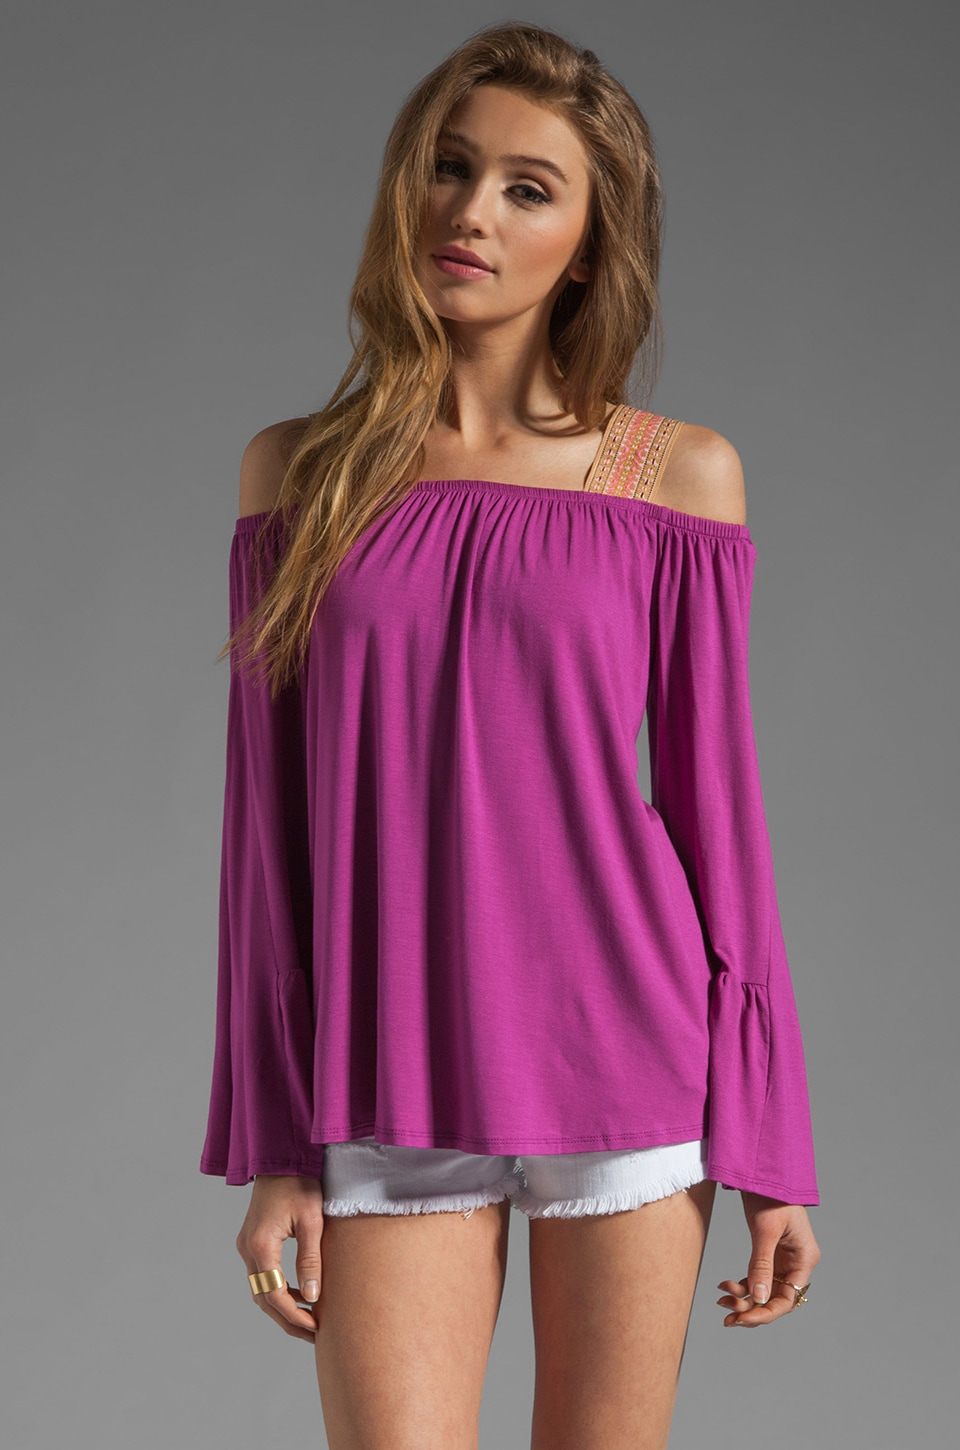 VAVA by Joy Han Rachel Off the Shoulder Top in Magenta